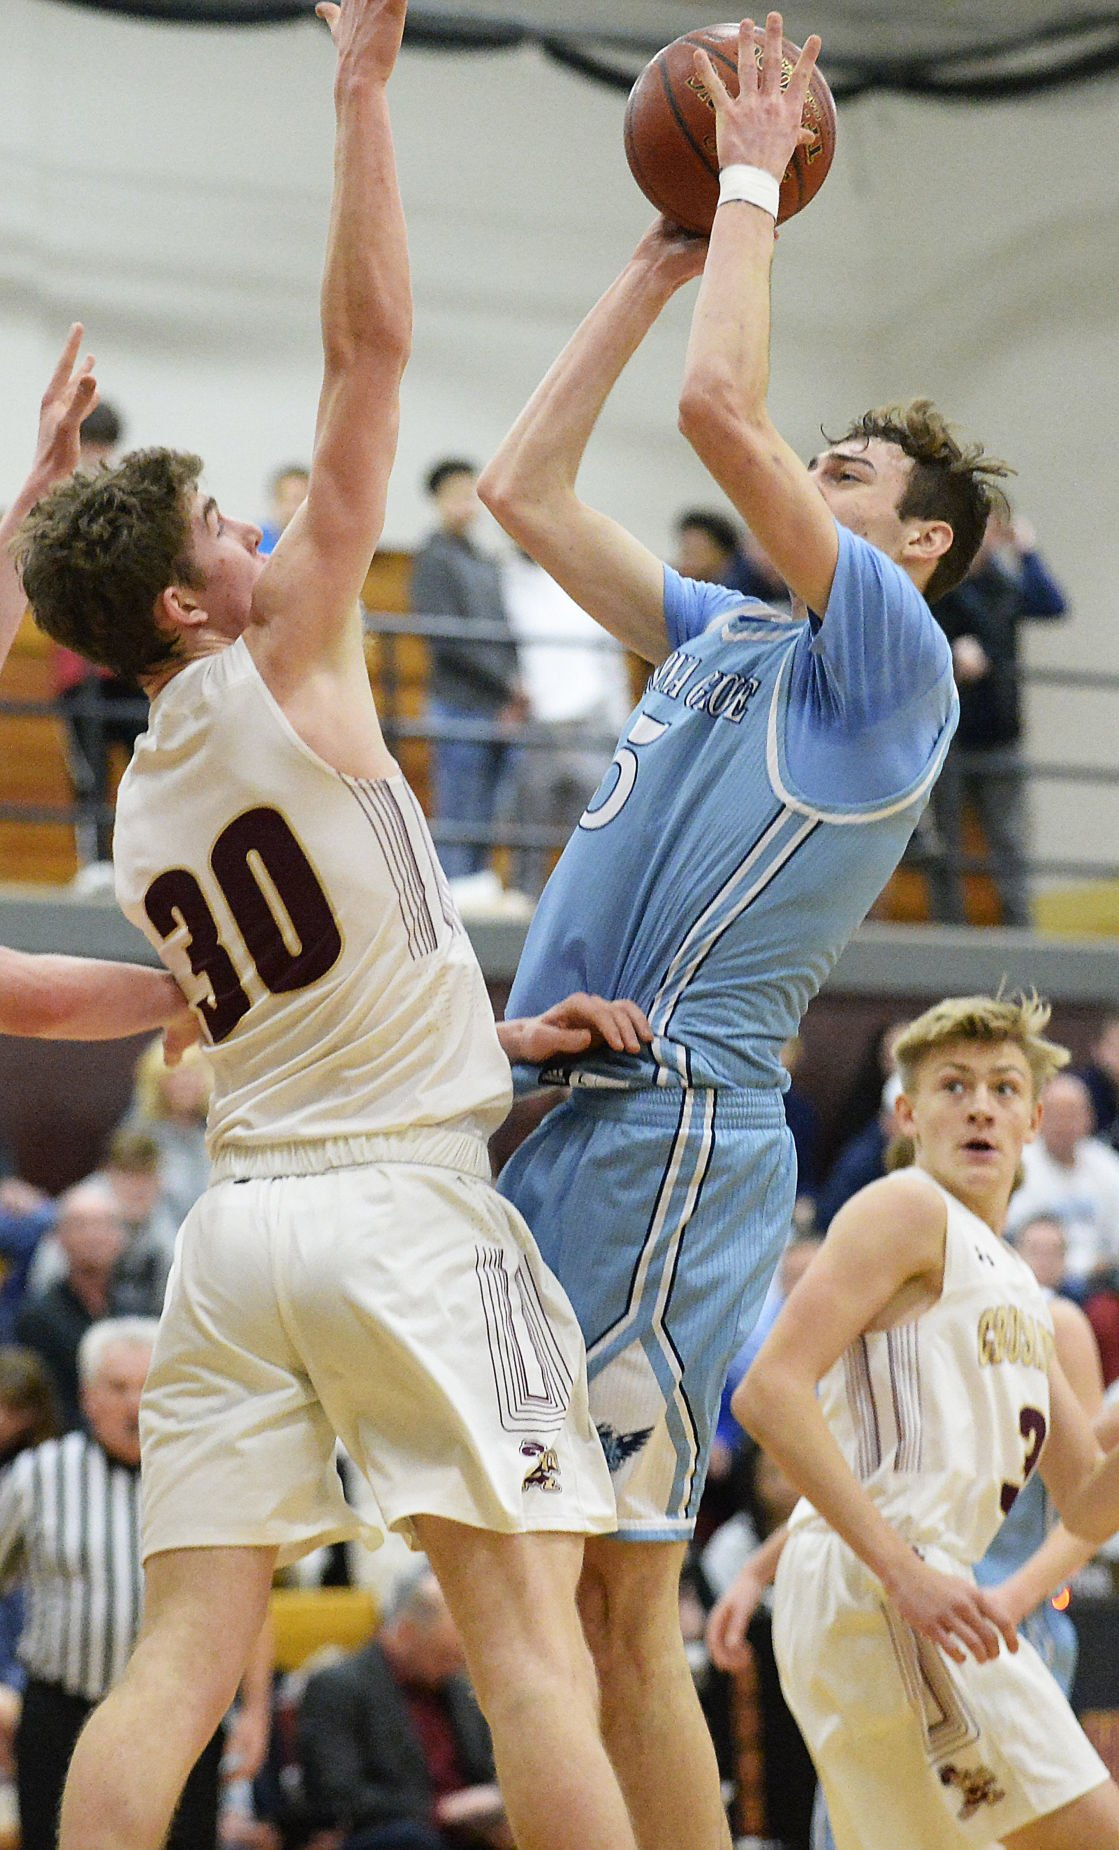 Prep boys basketball photo: Edgewood's Michael Meriggioli, Monona Grove's Sam Hepp